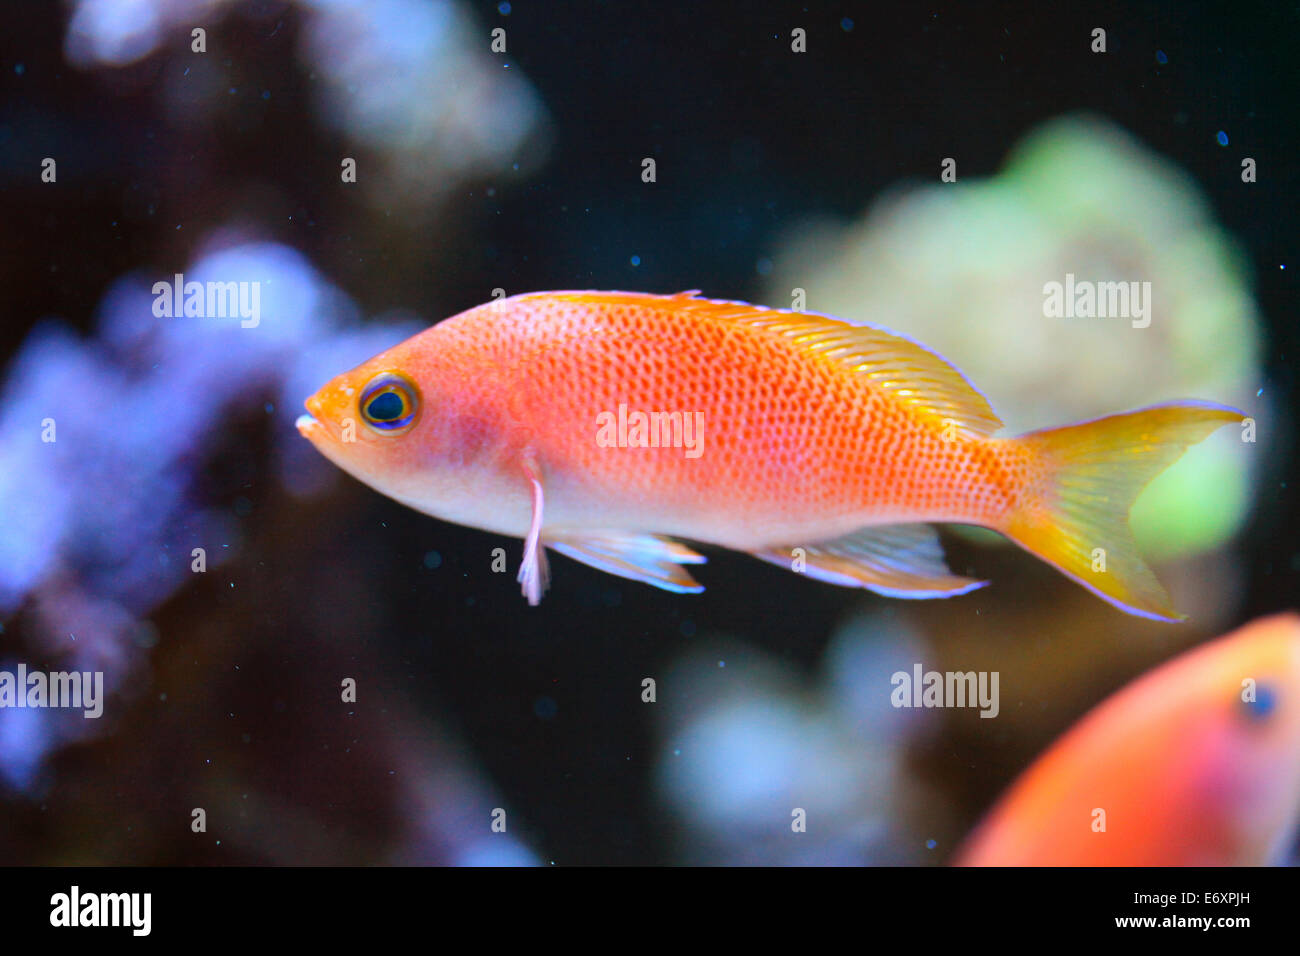 Resplendent Anthias Female - Stock Image